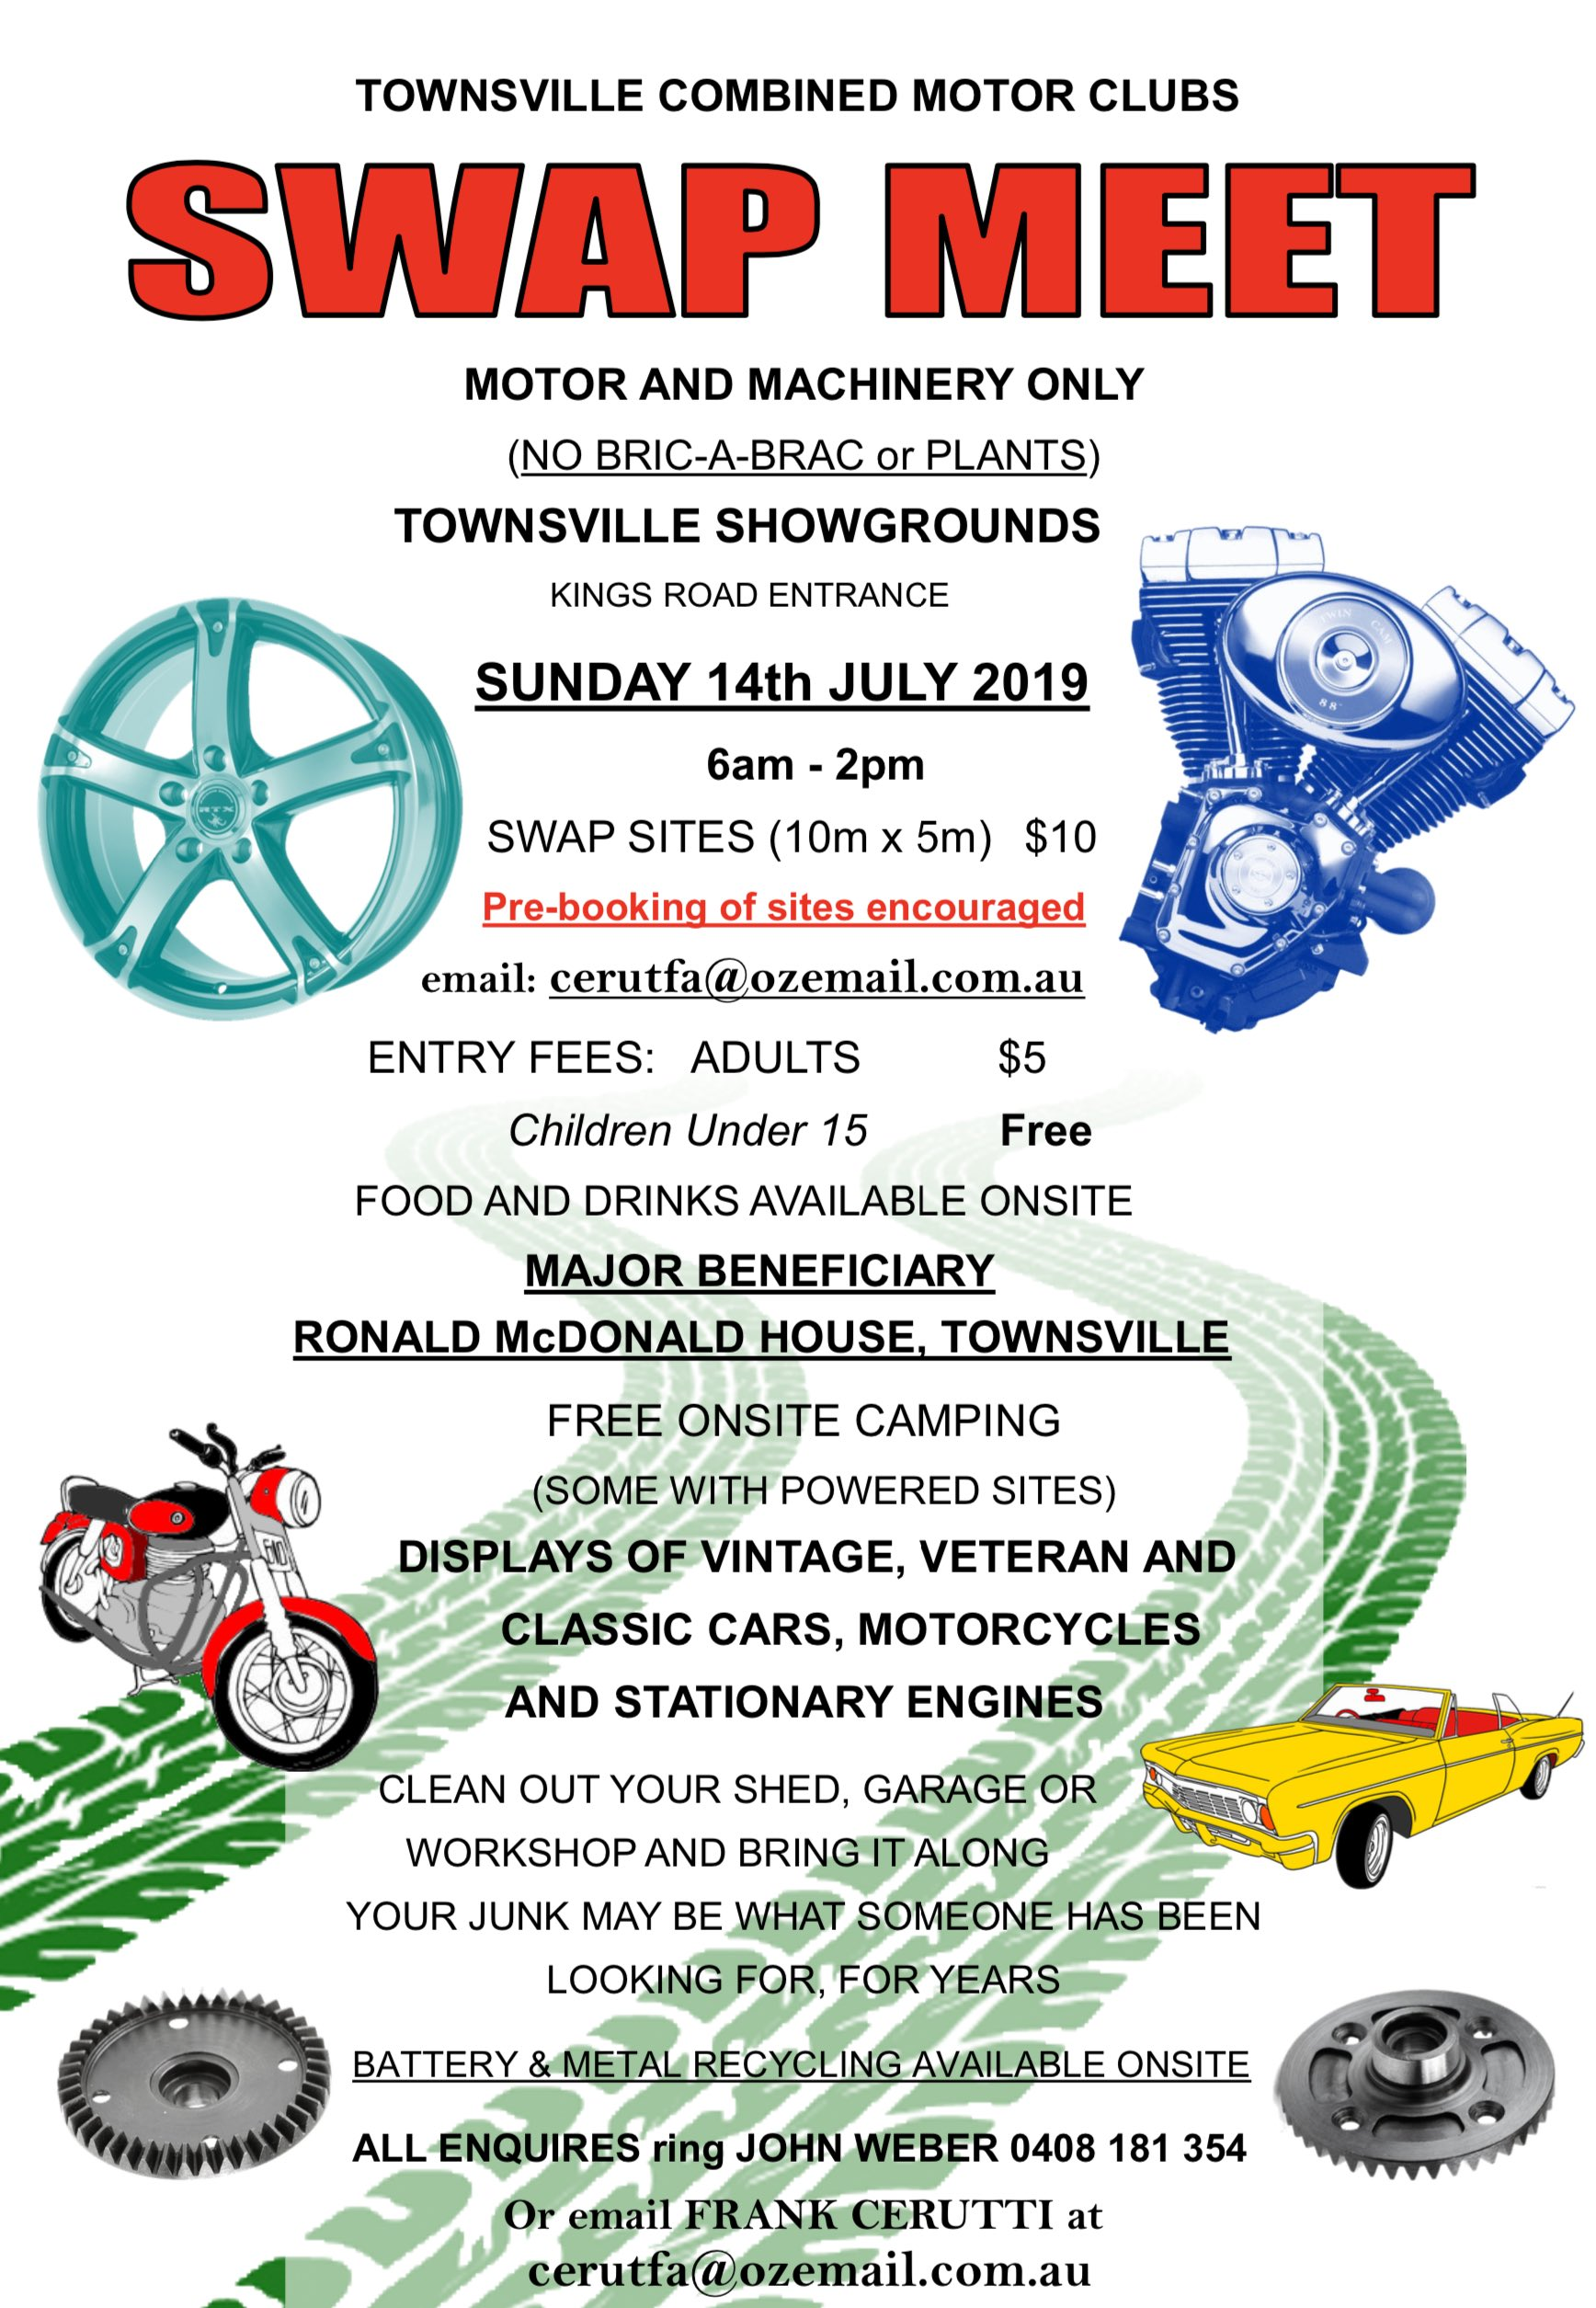 TOWNSVILLE COMBINED MOTOR CLUBS SWAPMEET 2019 @ TOWNSVILLE SHOWGROUNDS KINGS ROAD ENTRANCE | West End | Queensland | Australia